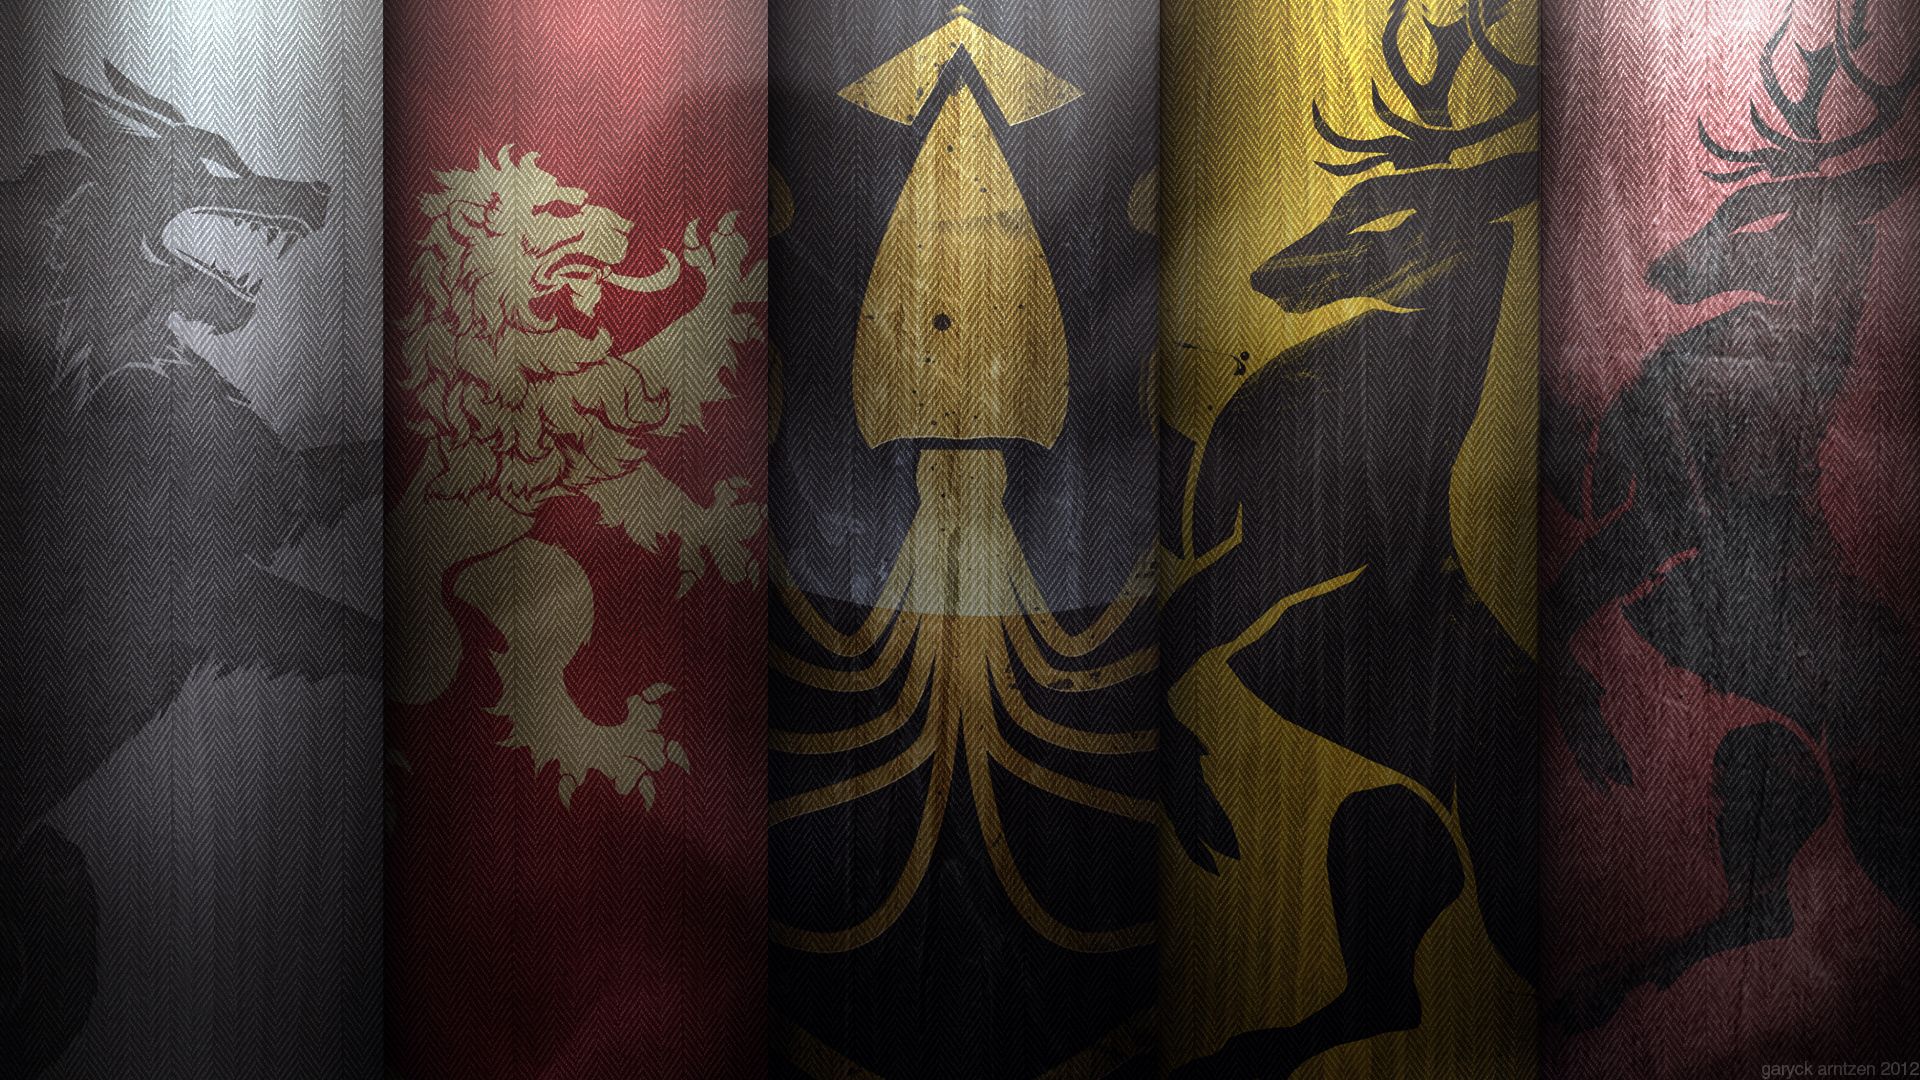 Download Game of Thrones Wallpapers HD   Celtas Today 1920x1080